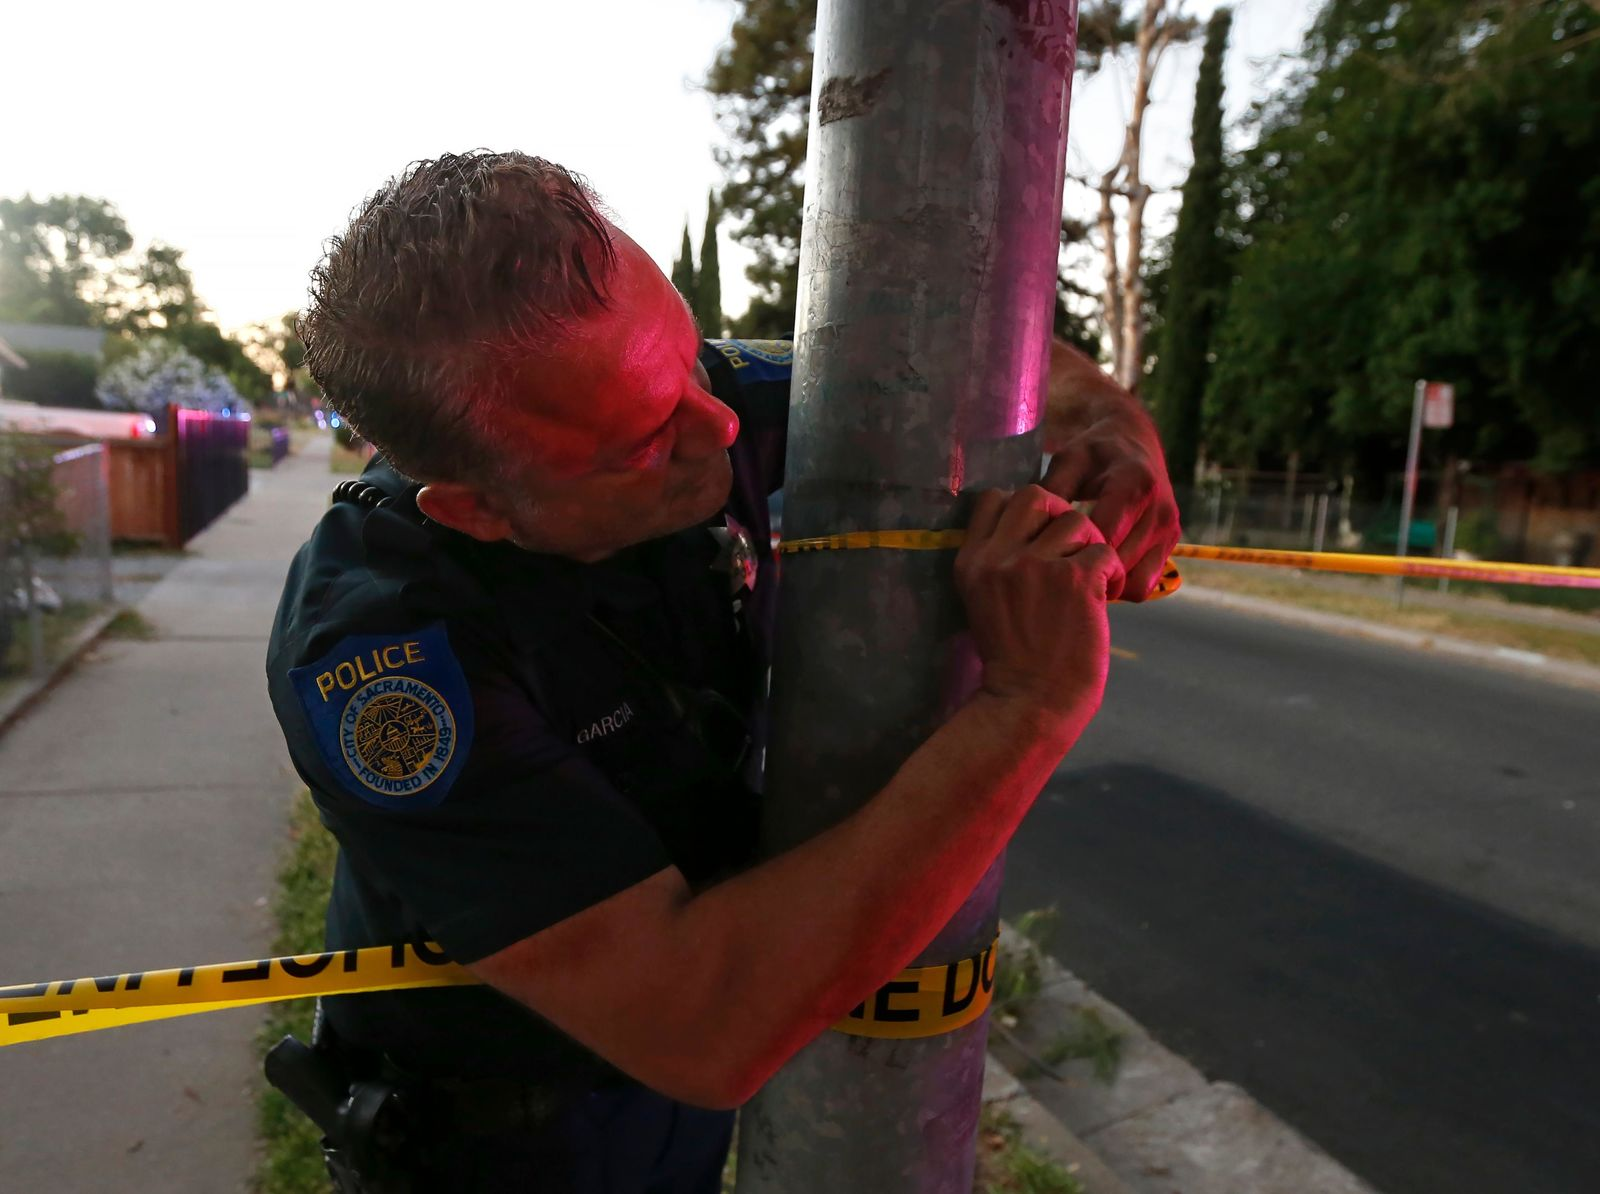 A Sacramento Police officer puts up crime scene tape near a home that authorities have surrounded where a gunman has taken refuge after shooting a Sacramento police officer, Wednesday, June 19, 2019, in Sacramento, Calif. (AP Photo/Rich Pedroncelli)